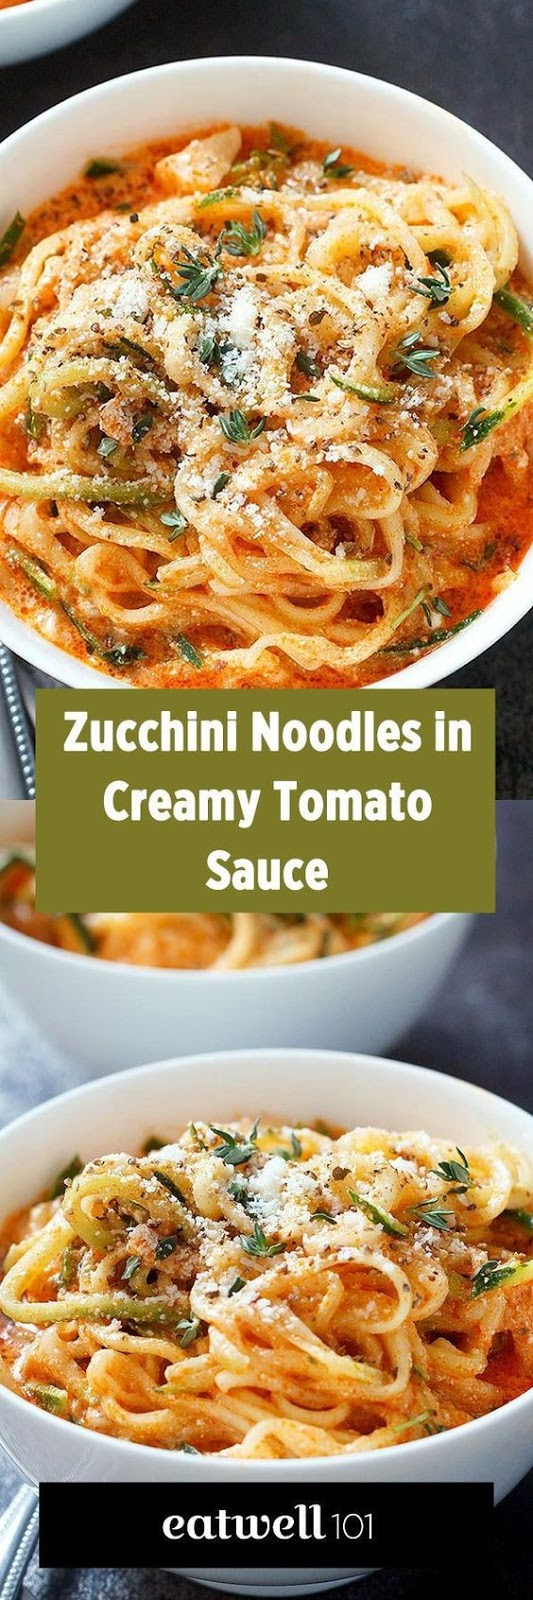 Zucchini Noodles in Creamy Tomato Sauce #Zucchini #Noodles #Creamy #Tomato #Sauce #DESSERTS #HEALTHYFOOD #EASY_RECIPES #DINNER #LAUCH #DELICIOUS #EASY #HOLIDAYS #RECIPE #SPECIAL_DIET #WORLD_CUISINE #CAKE #GRILL #APPETIZERS #HEALTHY_RECIPES #DRINKS #COOKING_METHOD #ITALIAN_RECIPES #MEAT #VEGAN_RECIPES #COOKIES #PASTA #FRUIT #SALAD #SOUP_APPETIZERS #NON_ALCOHOLIC_DRINKS #MEAL_PLANNING #VEGETABLES #SOUP #PASTRY #CHOCOLATE #DAIRY #ALCOHOLIC_DRINKS #BULGUR_SALAD #BAKING #SNACKS #BEEF_RECIPES #MEAT_APPETIZERS #MEXICAN_RECIPES #BREAD #ASIAN_RECIPES #SEAFOOD_APPETIZERS #MUFFINS #BREAKFAST_AND_BRUNCH #CONDIMENTS #CUPCAKES #CHEESE #CHICKEN_RECIPES #PIE #COFFEE #NO_BAKE_DESSERTS #HEALTHY_SNACKS #SEAFOOD #GRAIN #LUNCHES_DINNERS #MEXICAN #QUICK_BREAD #LIQUOR